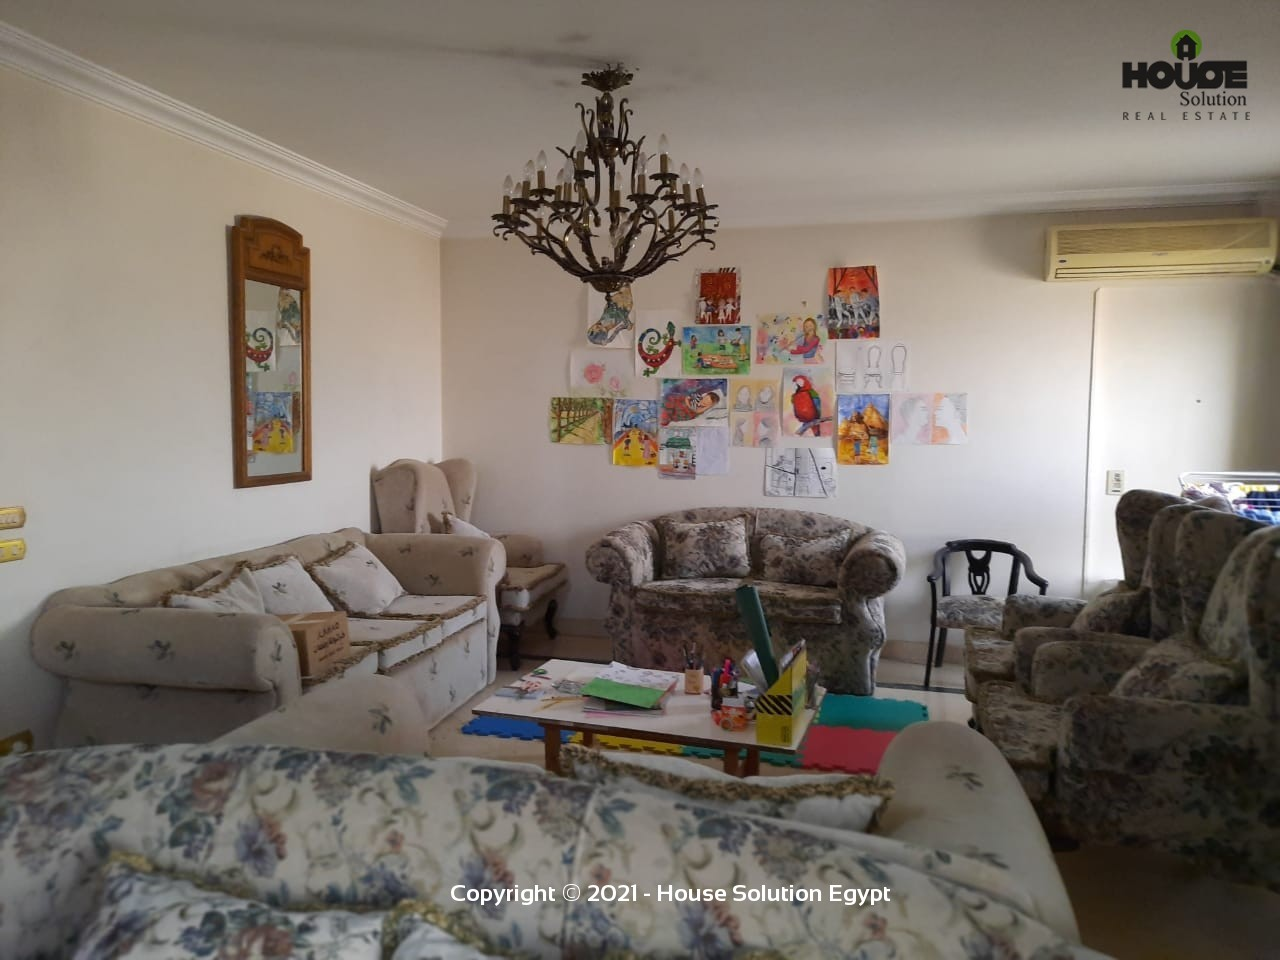 Splendid Furnished Apartment For Rent In Maadi Degla Cairo Egypt - 4957 Featured Image